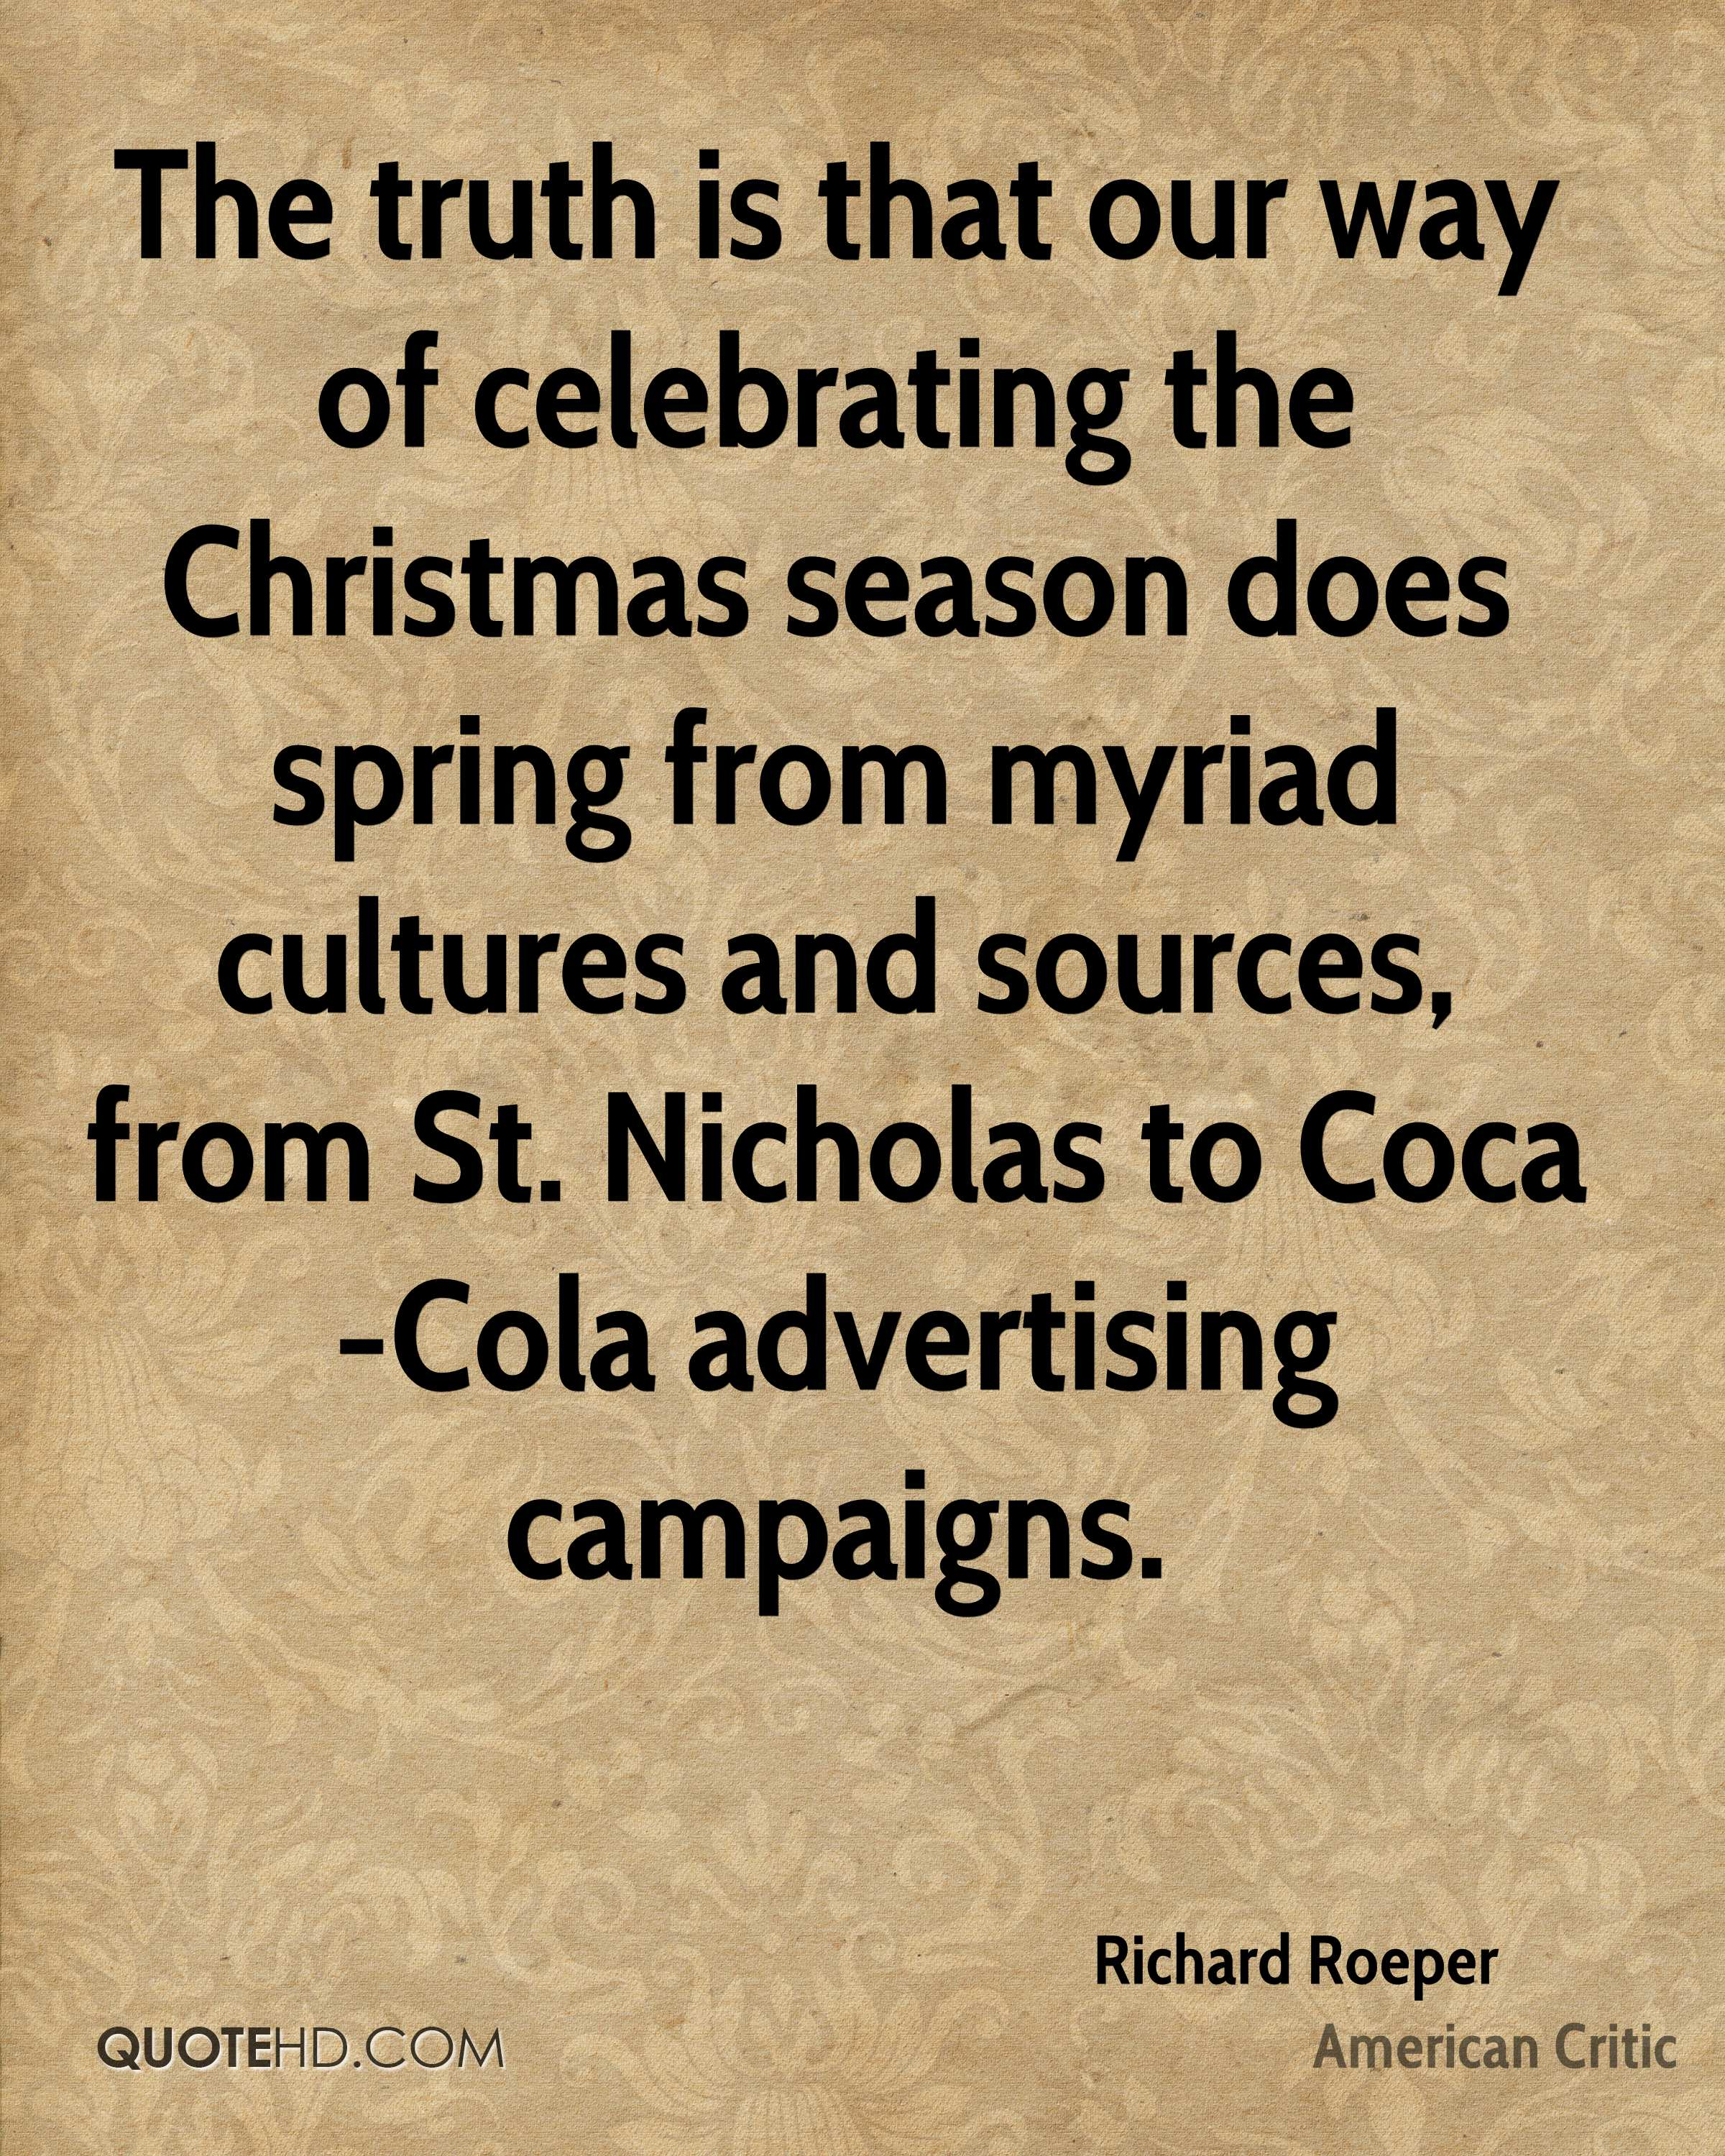 The truth is that our way of celebrating the Christmas season does spring from myriad cultures and sources, from St. Nicholas to Coca-Cola advertising campaigns.